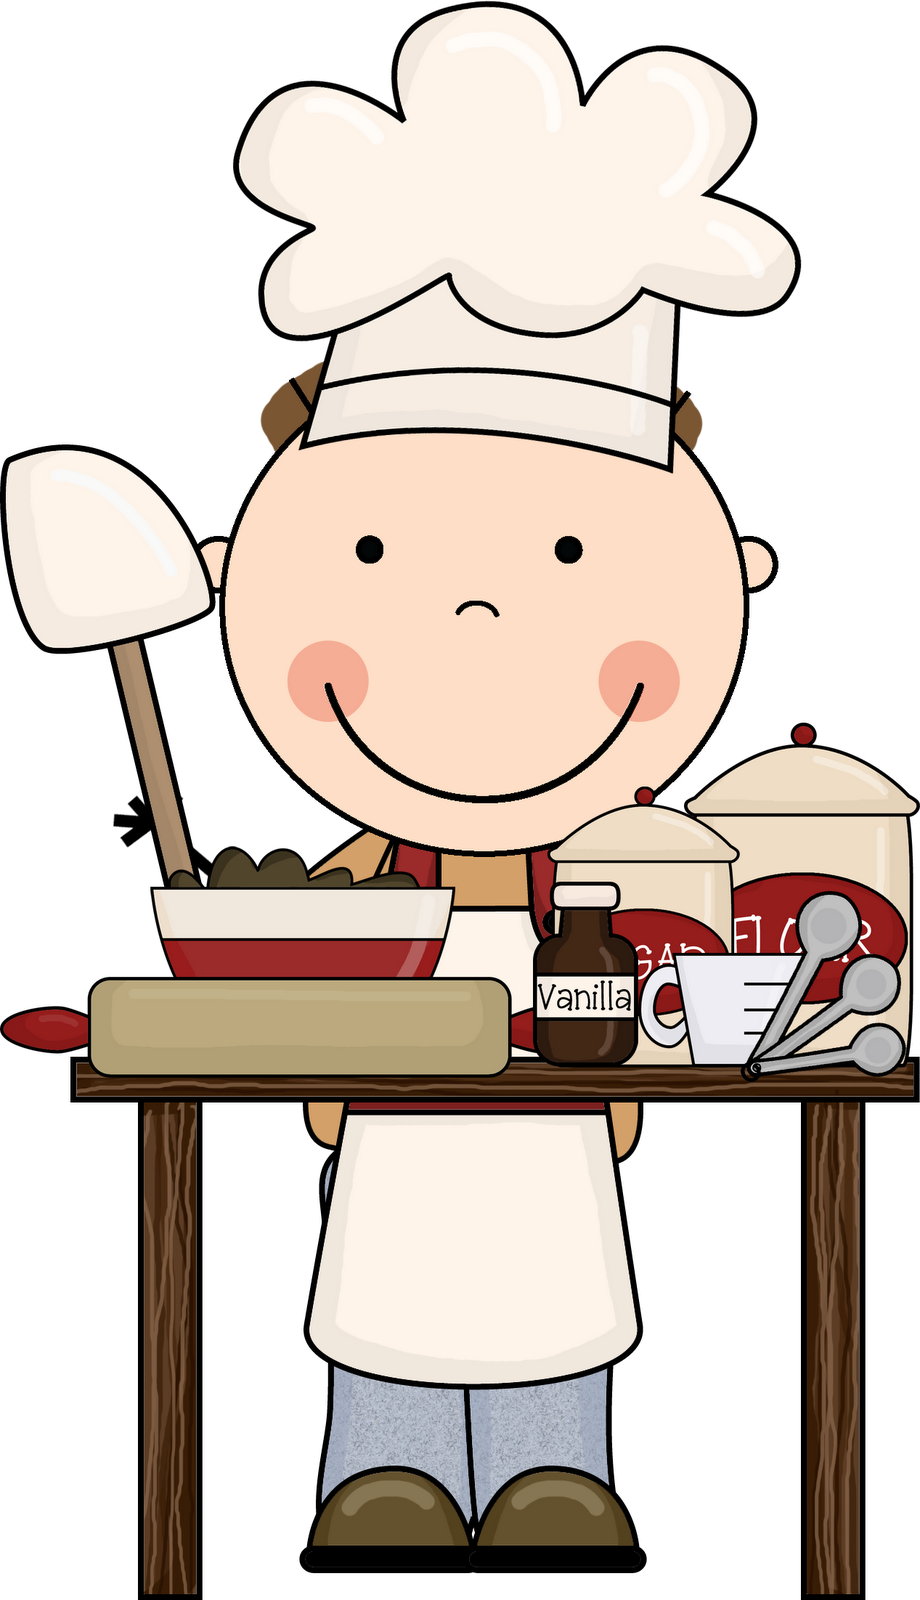 Sample image from scrappindoodles. Health clipart healthy cooking